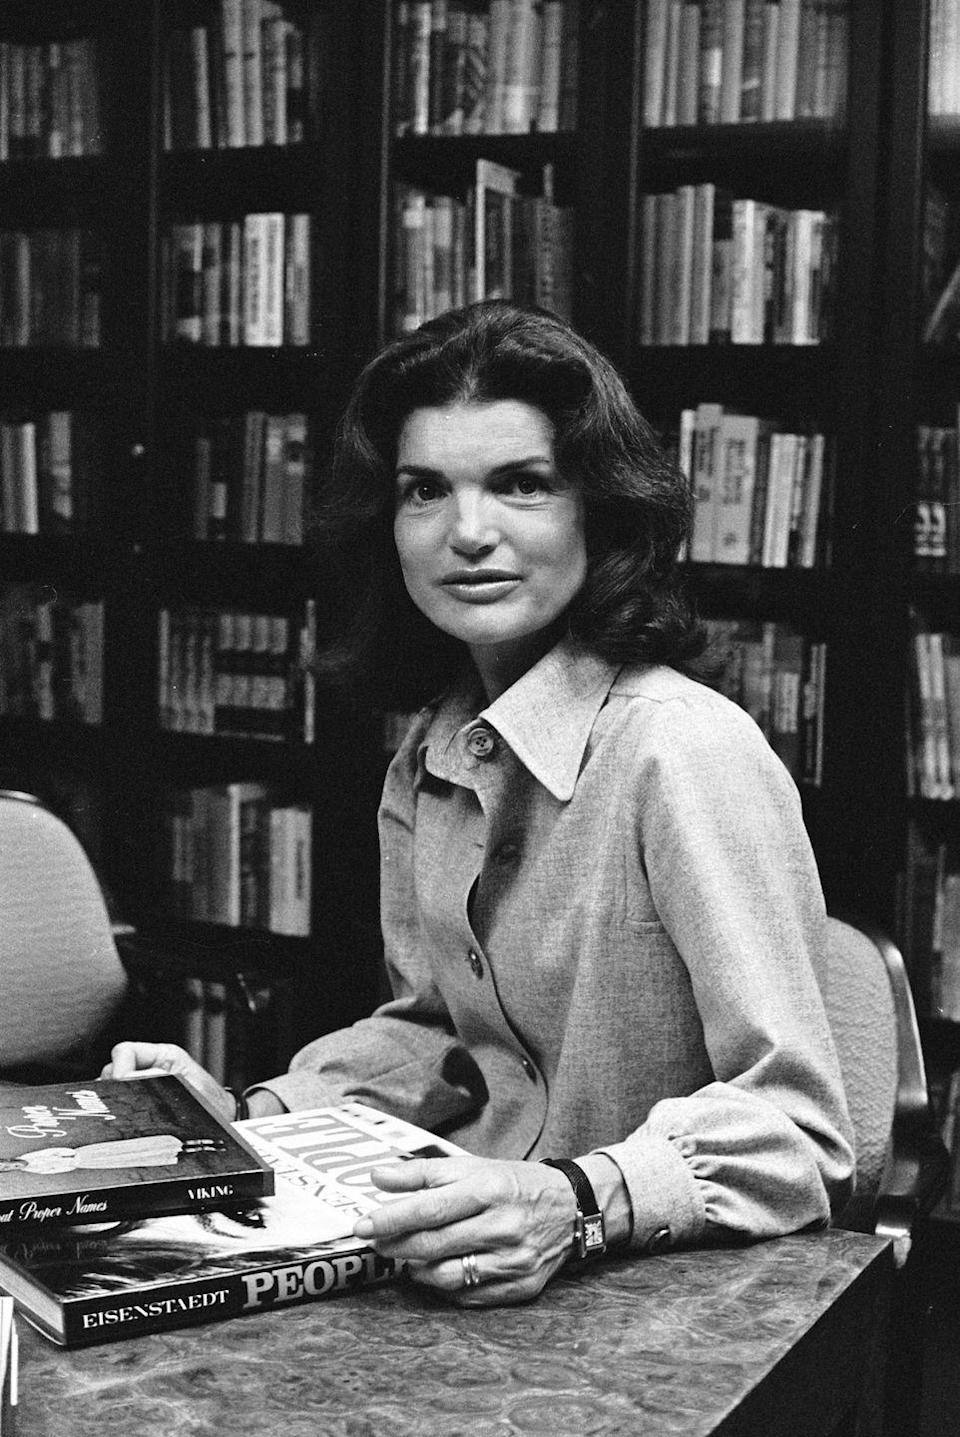 <p>After Jacqueline Kennedy left the White House, the former First Lady took the position of book editor at a publishing house. In 1970, the Equal Pay Act was passed into legislation after it was discovered that women earned 15% less than men in the same position. </p>